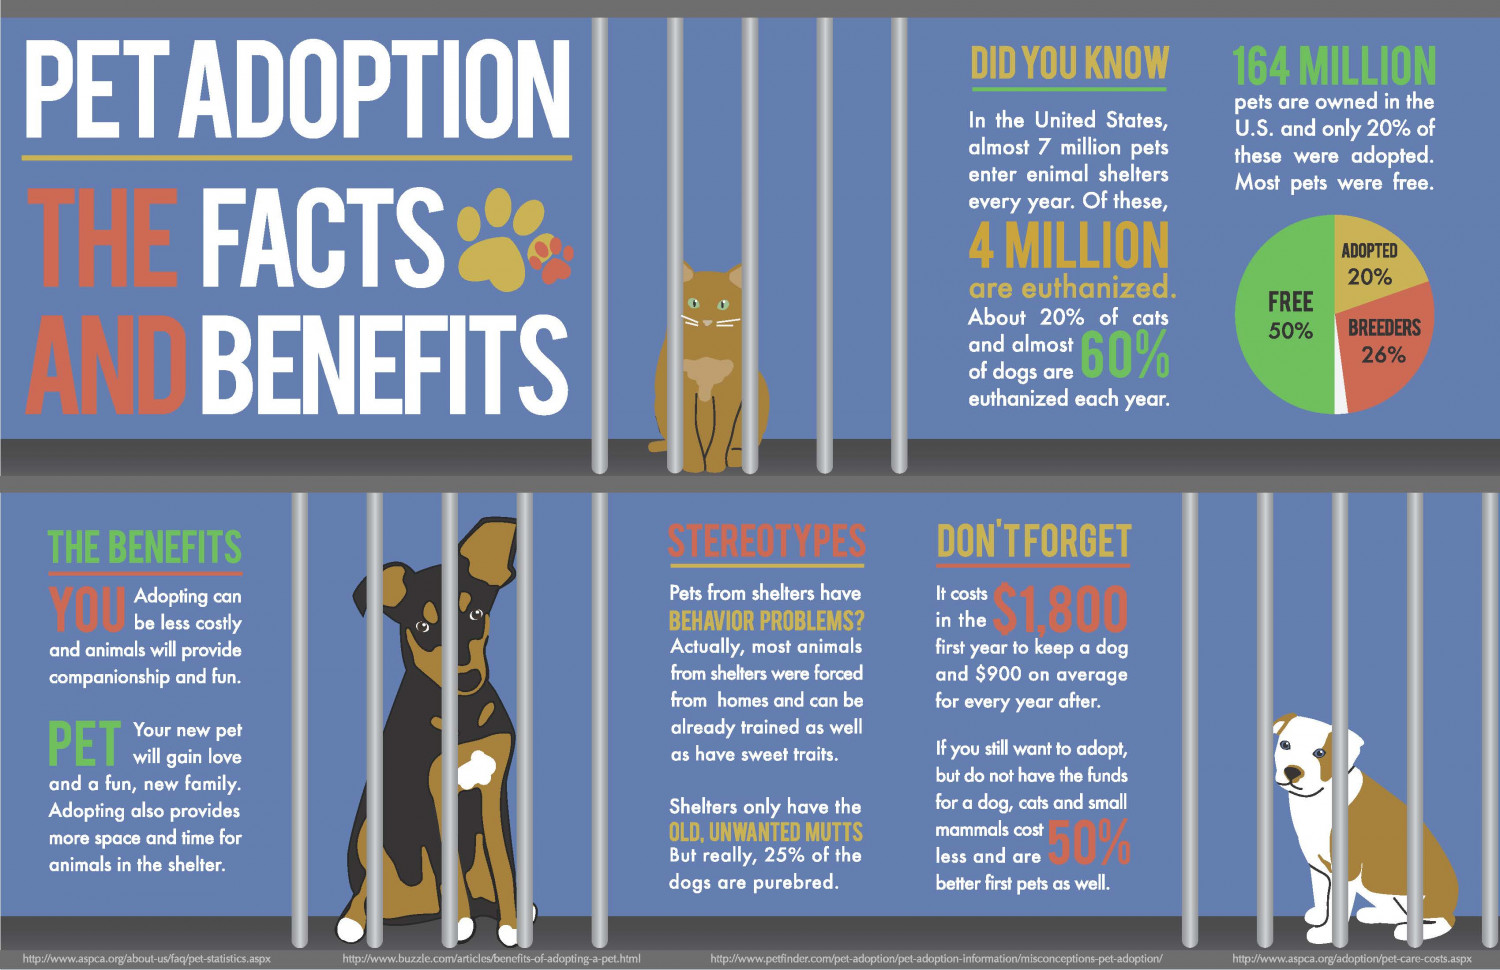 Pet Adoption The Facts and Benefits